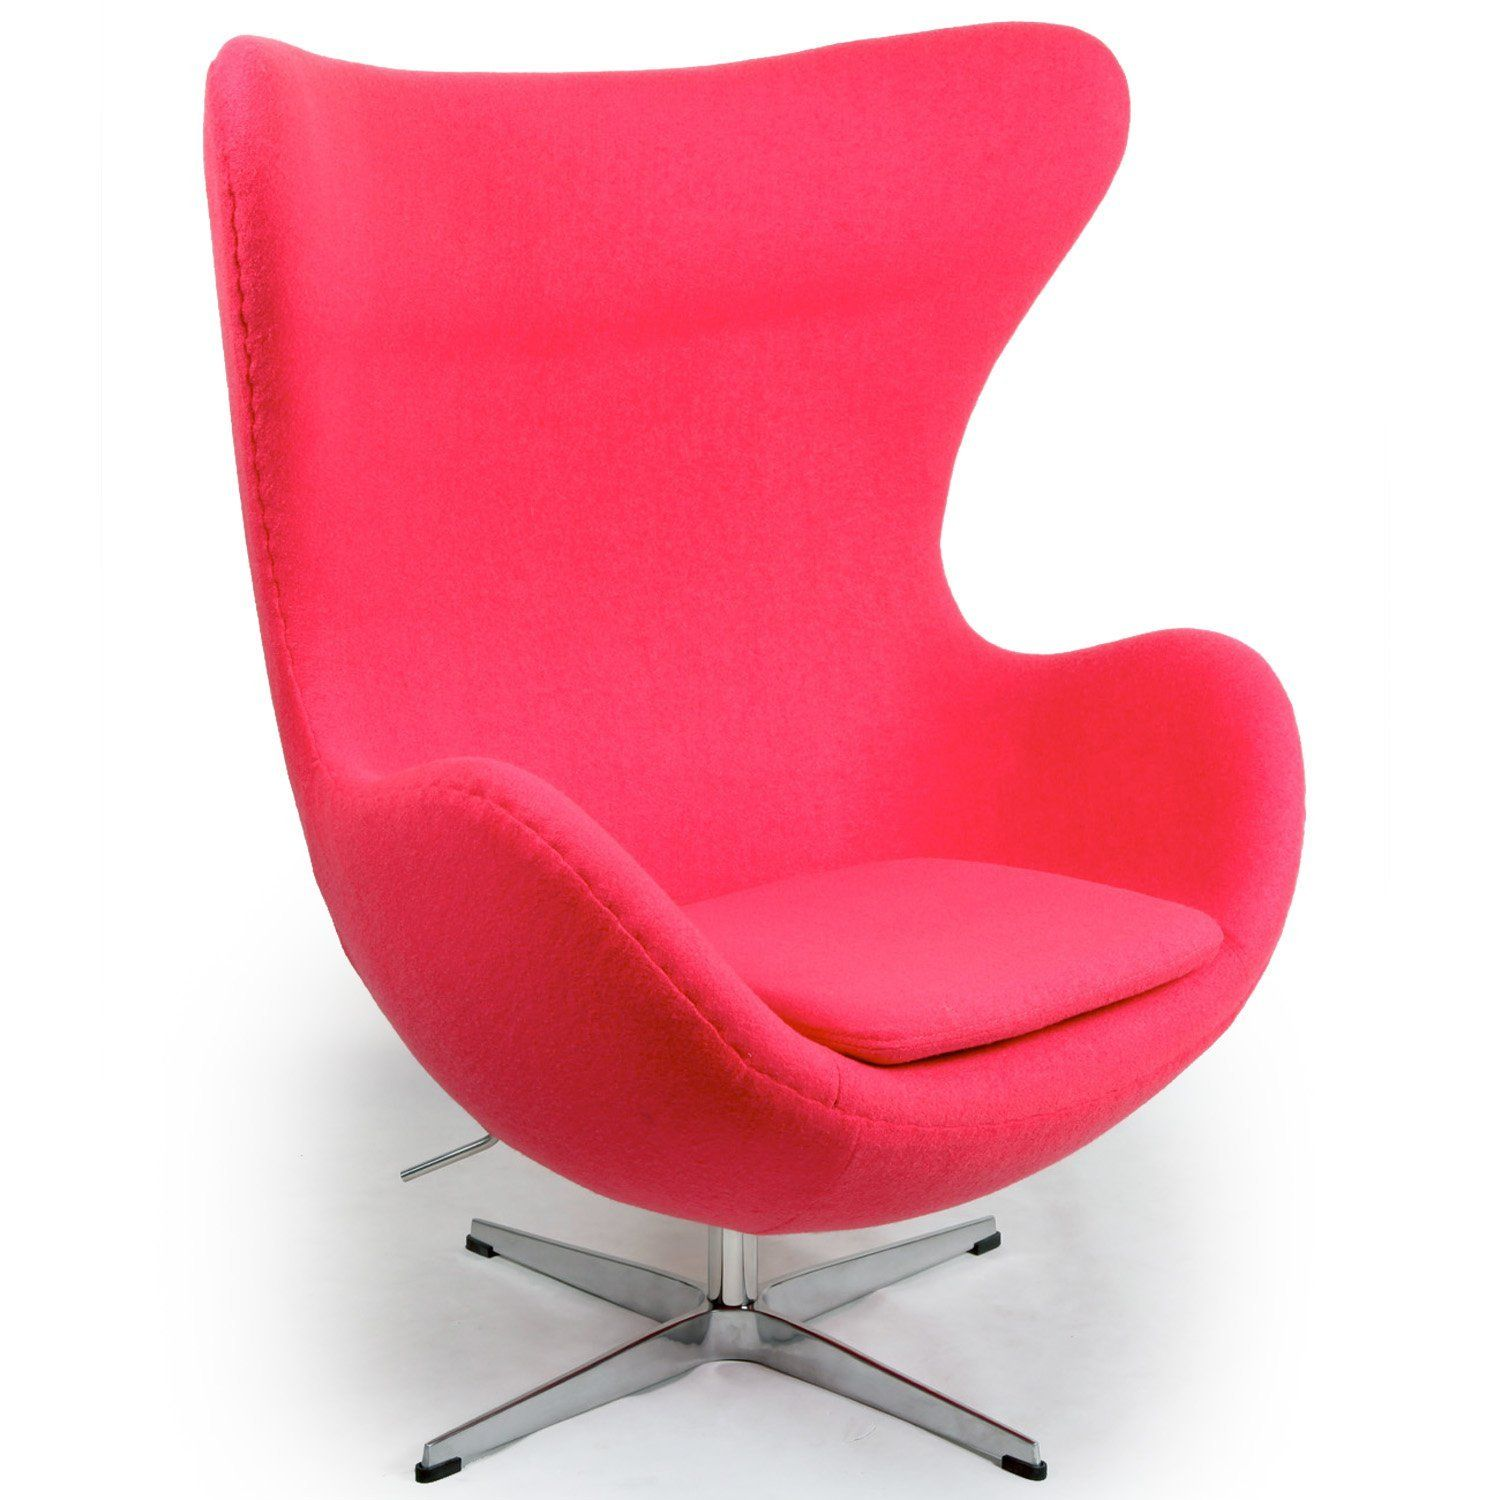 Upholstered Pink Chairs For Girls Rooms Cool Chairs For Bedroom Cool Bedroom Furniture Kids Bedroom Chairs